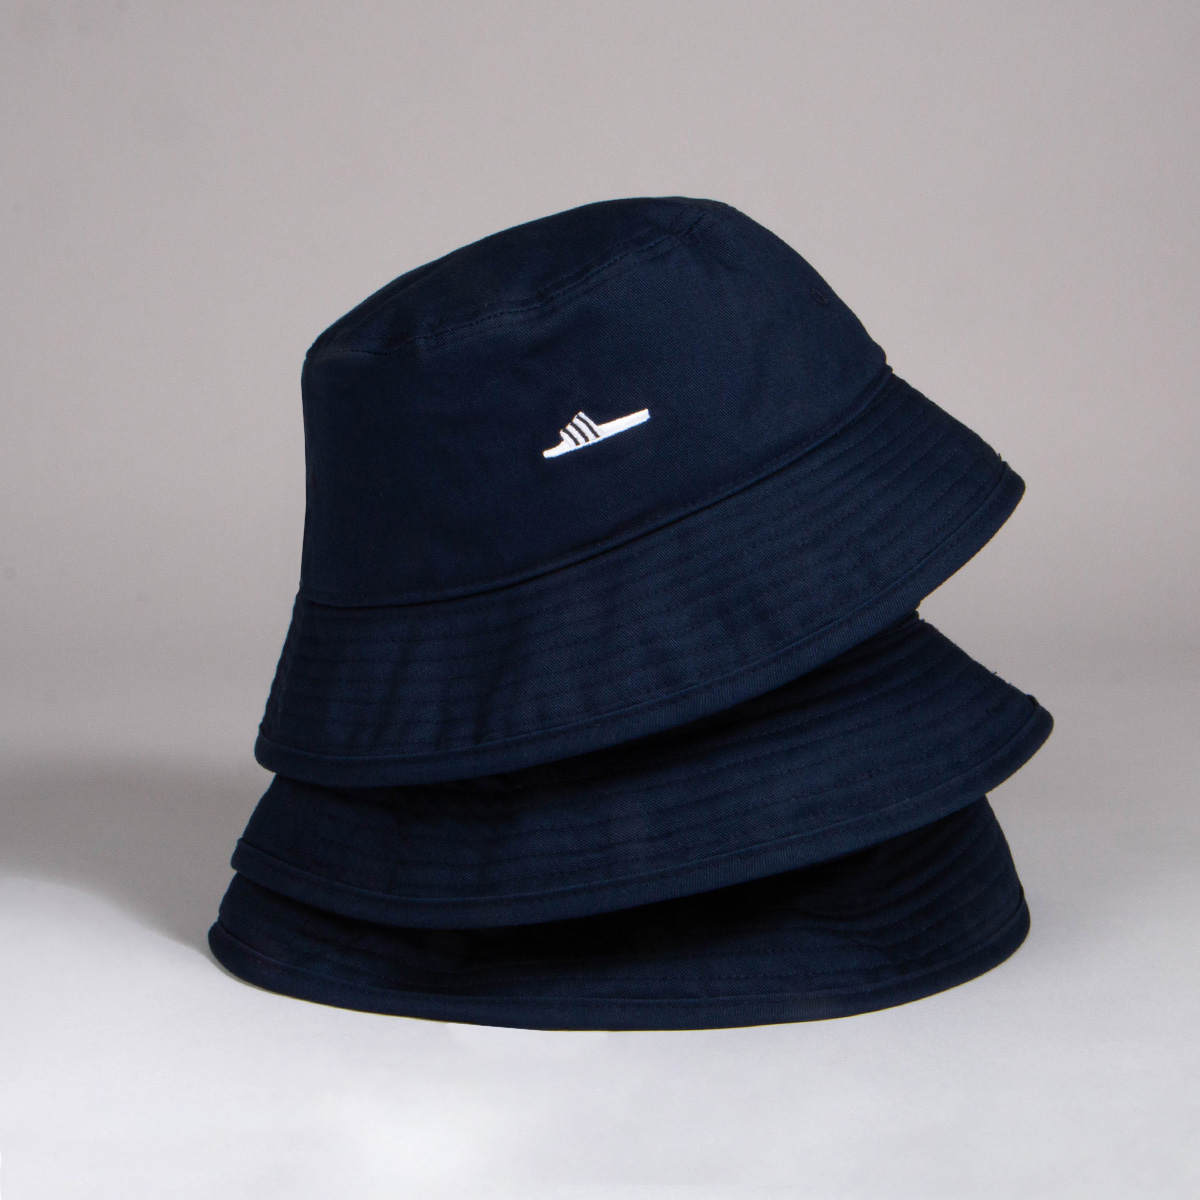 Three black Adidas bucket hats stacked on top of each other.